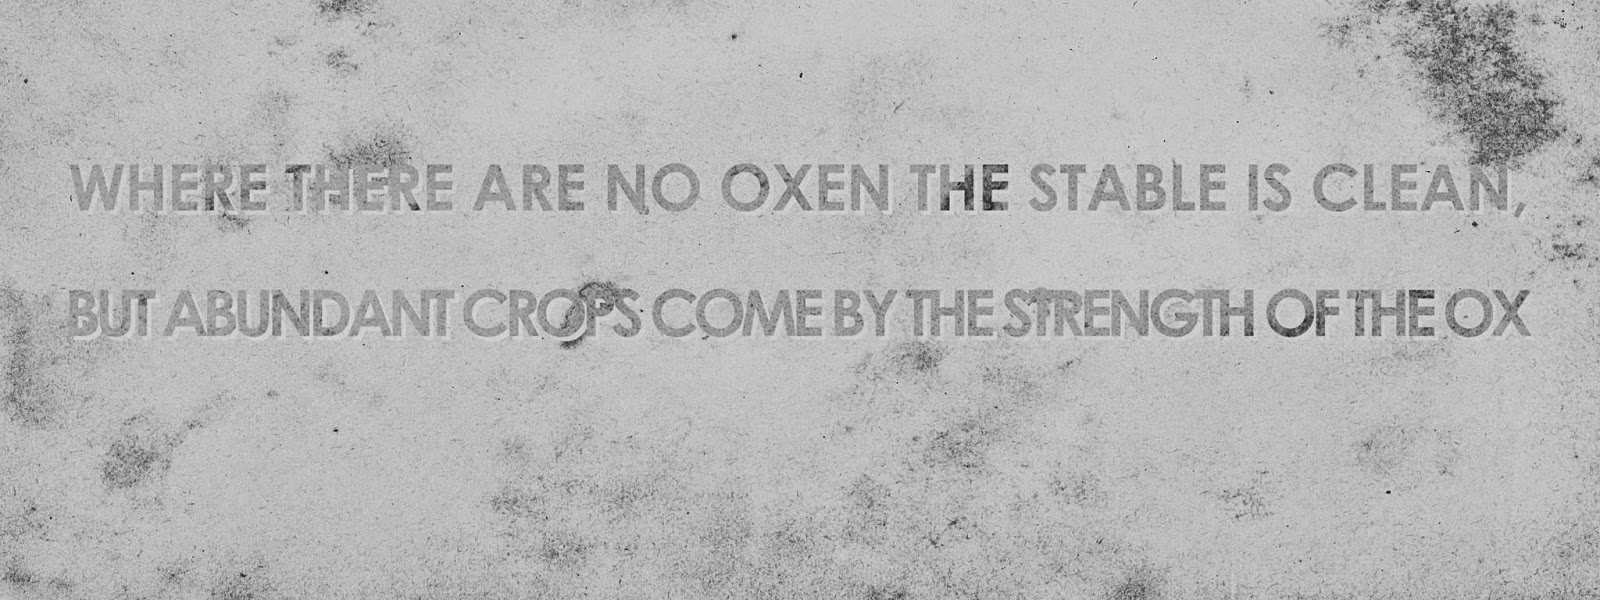 faux-stone-typography-where-there-are-no-oxen-the-stable-is-clean-fb-cover-wmiii-co-6